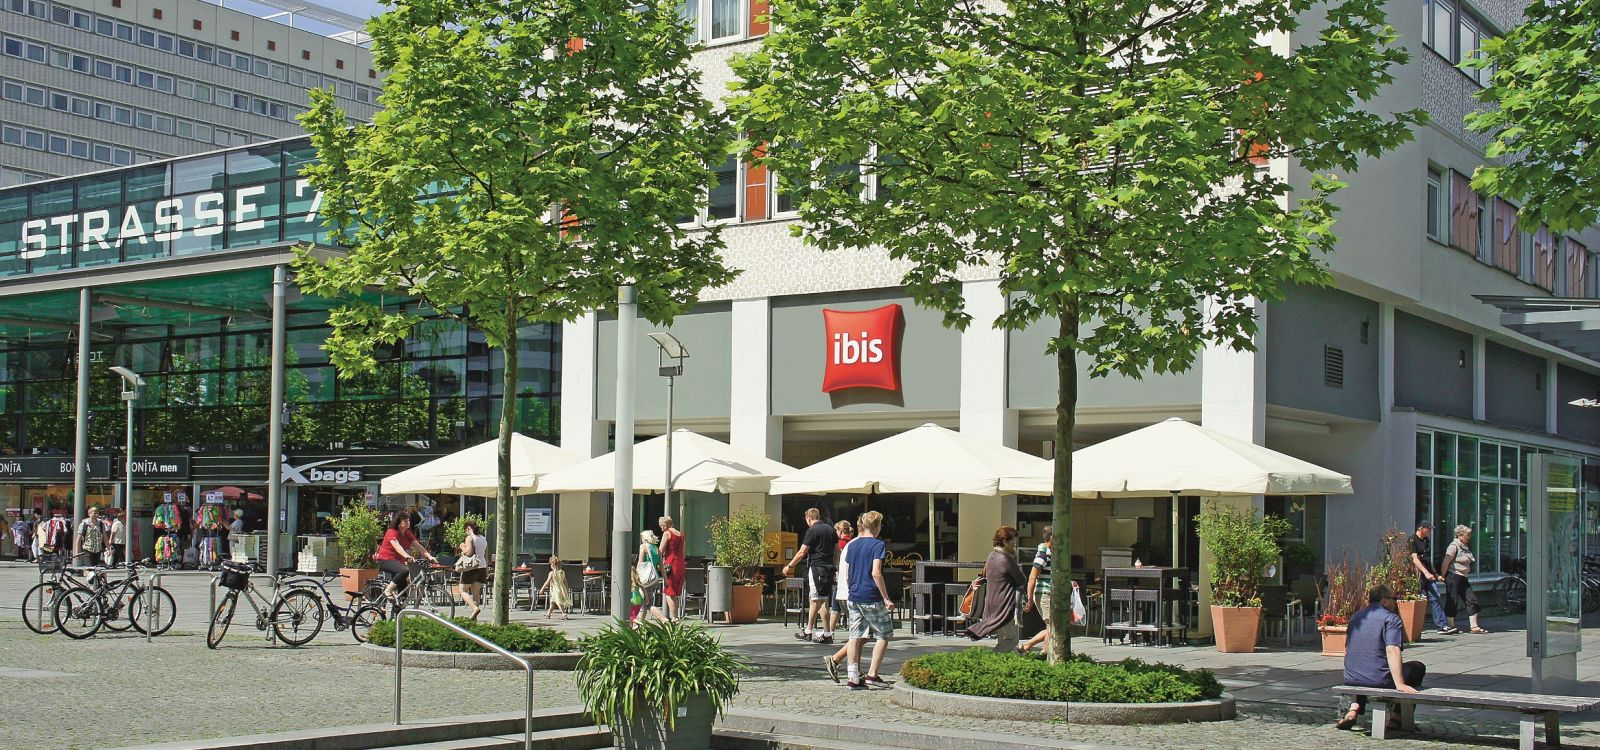 Ibis hotel dresden zentrum artmanagement for Dresden hotel zentrum